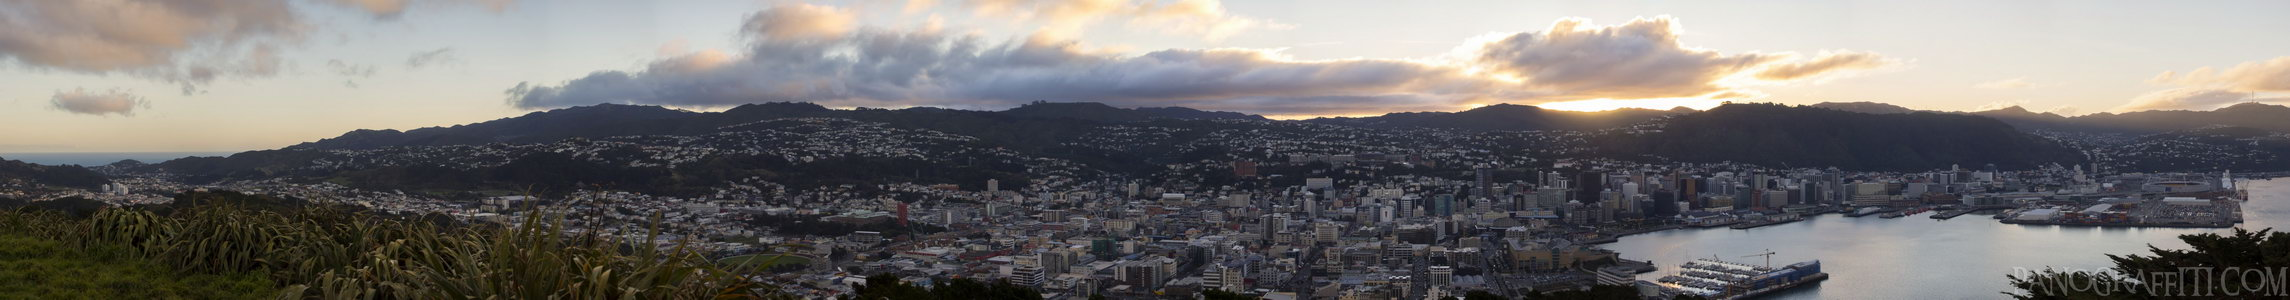 Wellington City and Harbour Just Before Sunset - Mount Victoria, Wellington, New Zealand